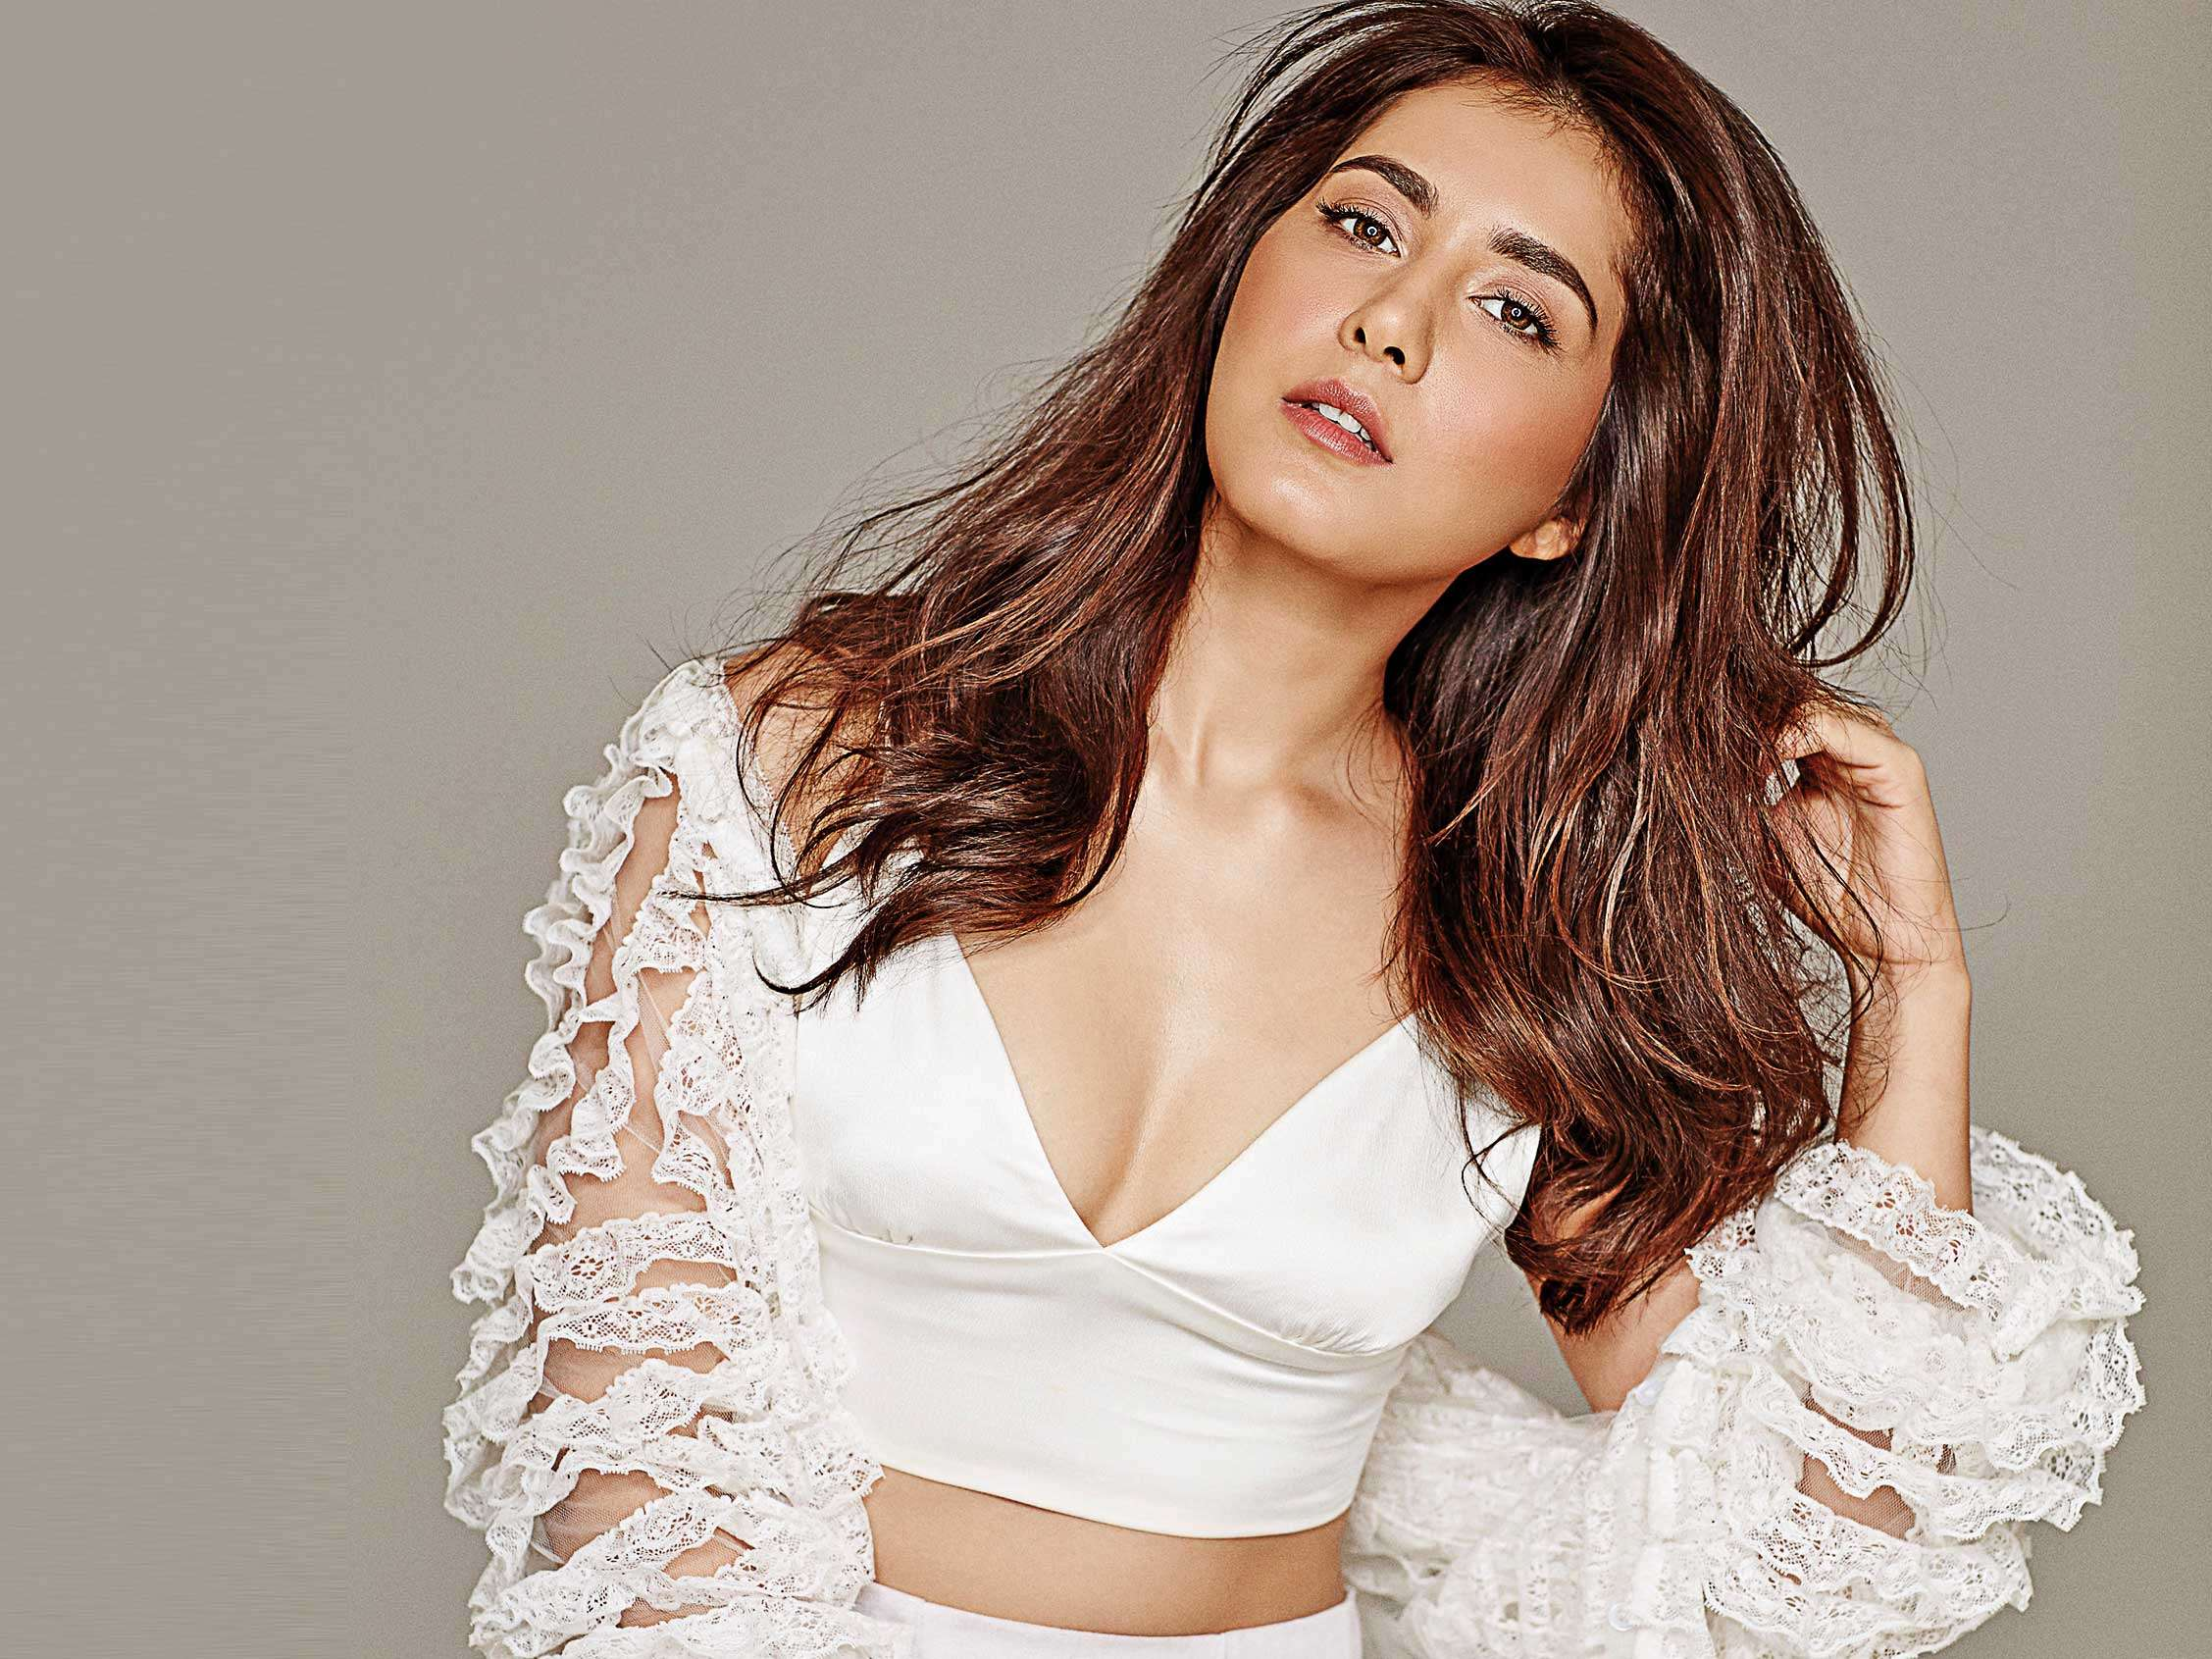 It took me two years to get a body I'm proud of: Raashi Khanna